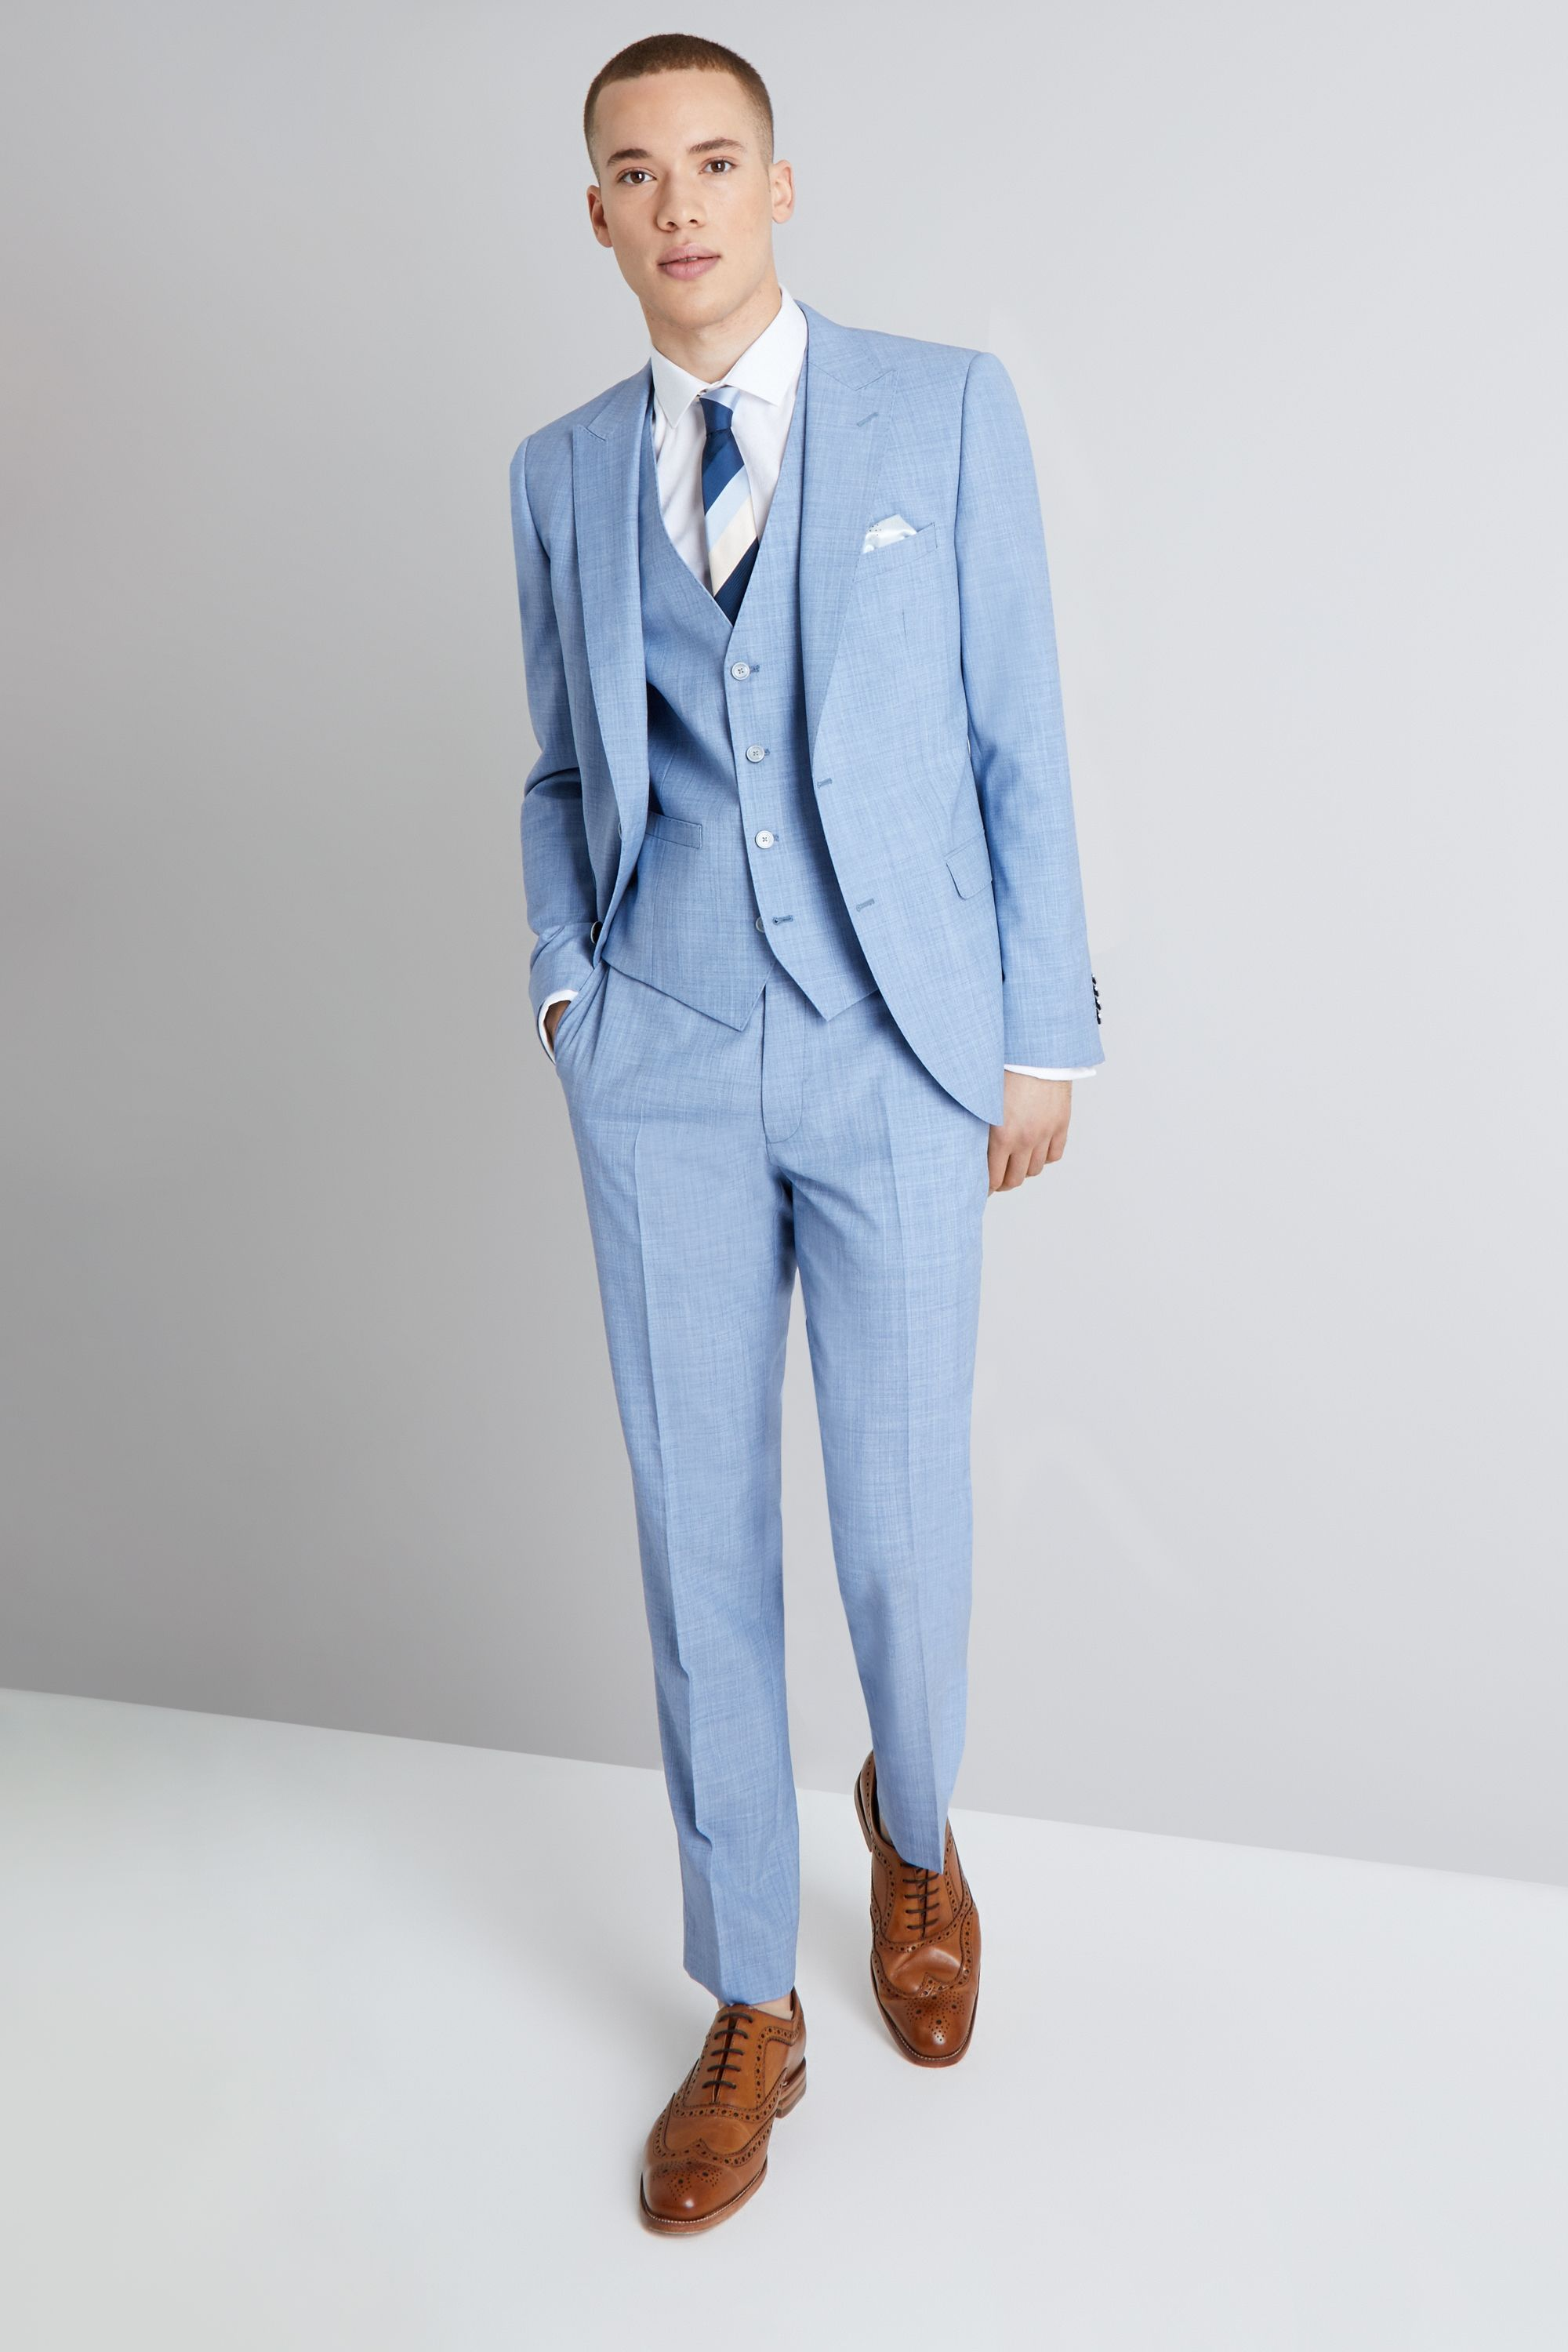 French Connection Slim Fit Sky Blue Marl Suit | Wedding suits